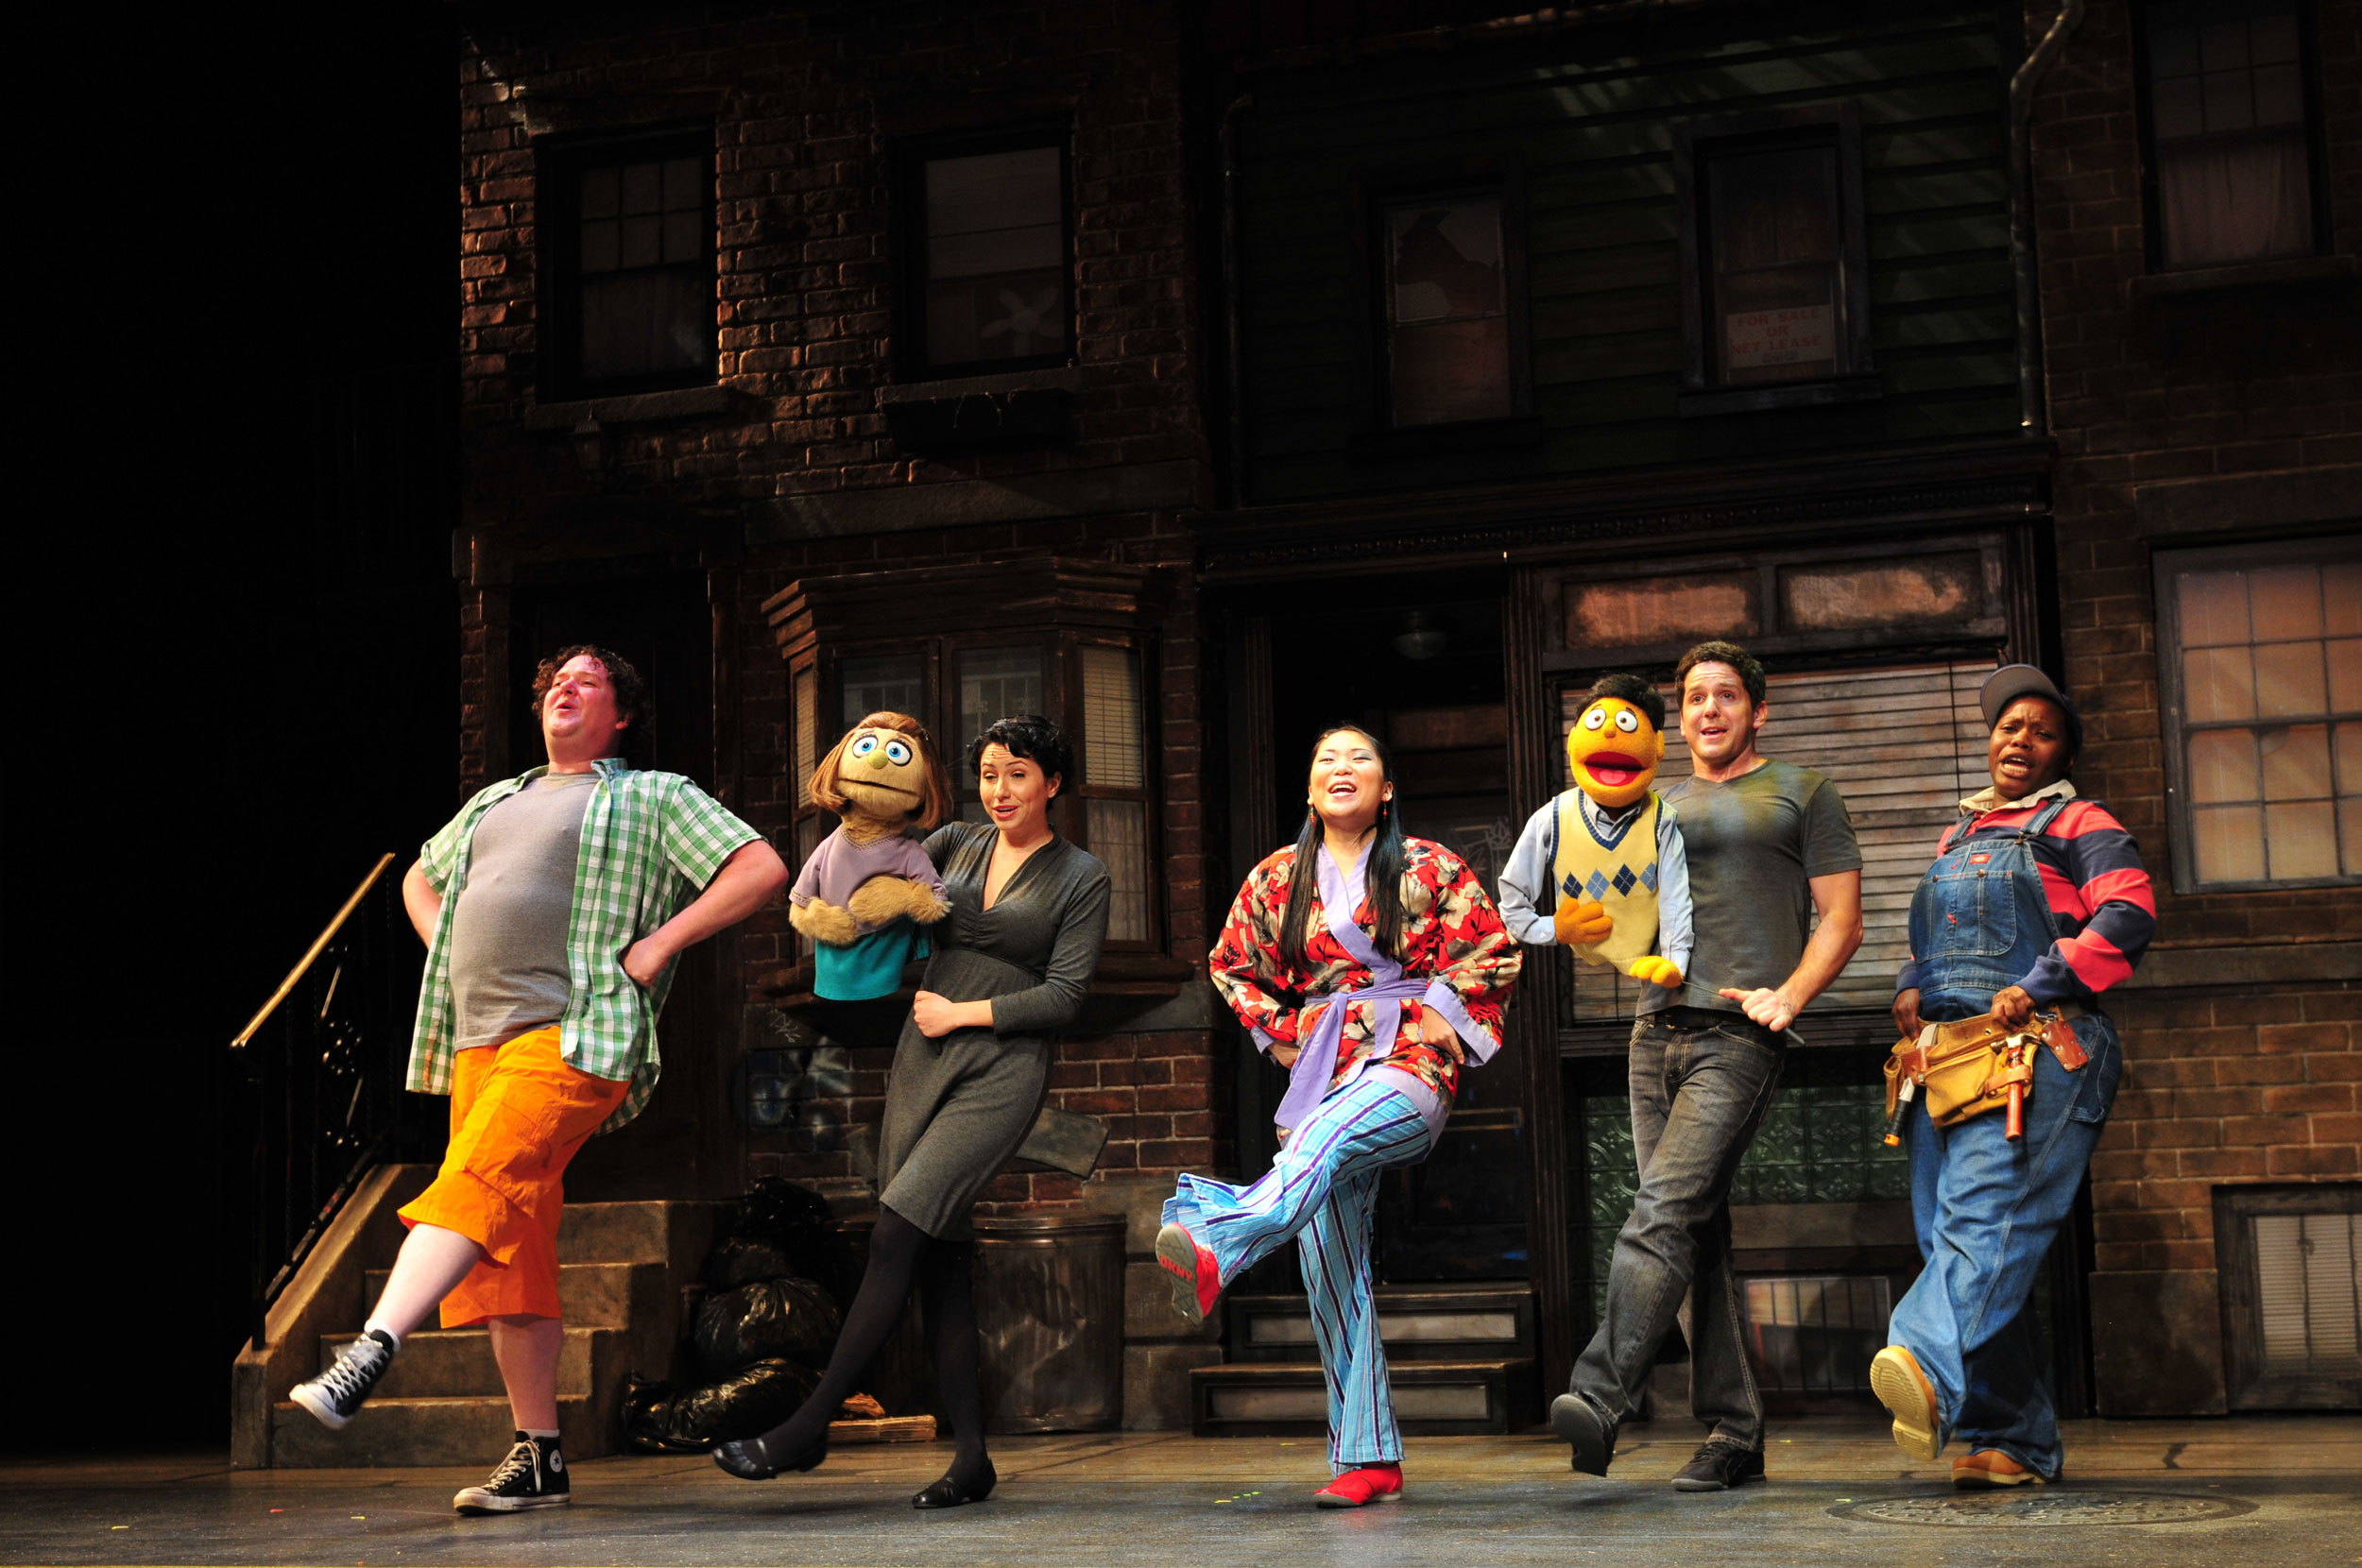 2011_OP_Avenue-Q_Jayson-Elliott_Ashley-Eileen-Bucknam_Rebecca-Larkin_Howie-Michael-Smith_Zonya-Love_RGB.jpg